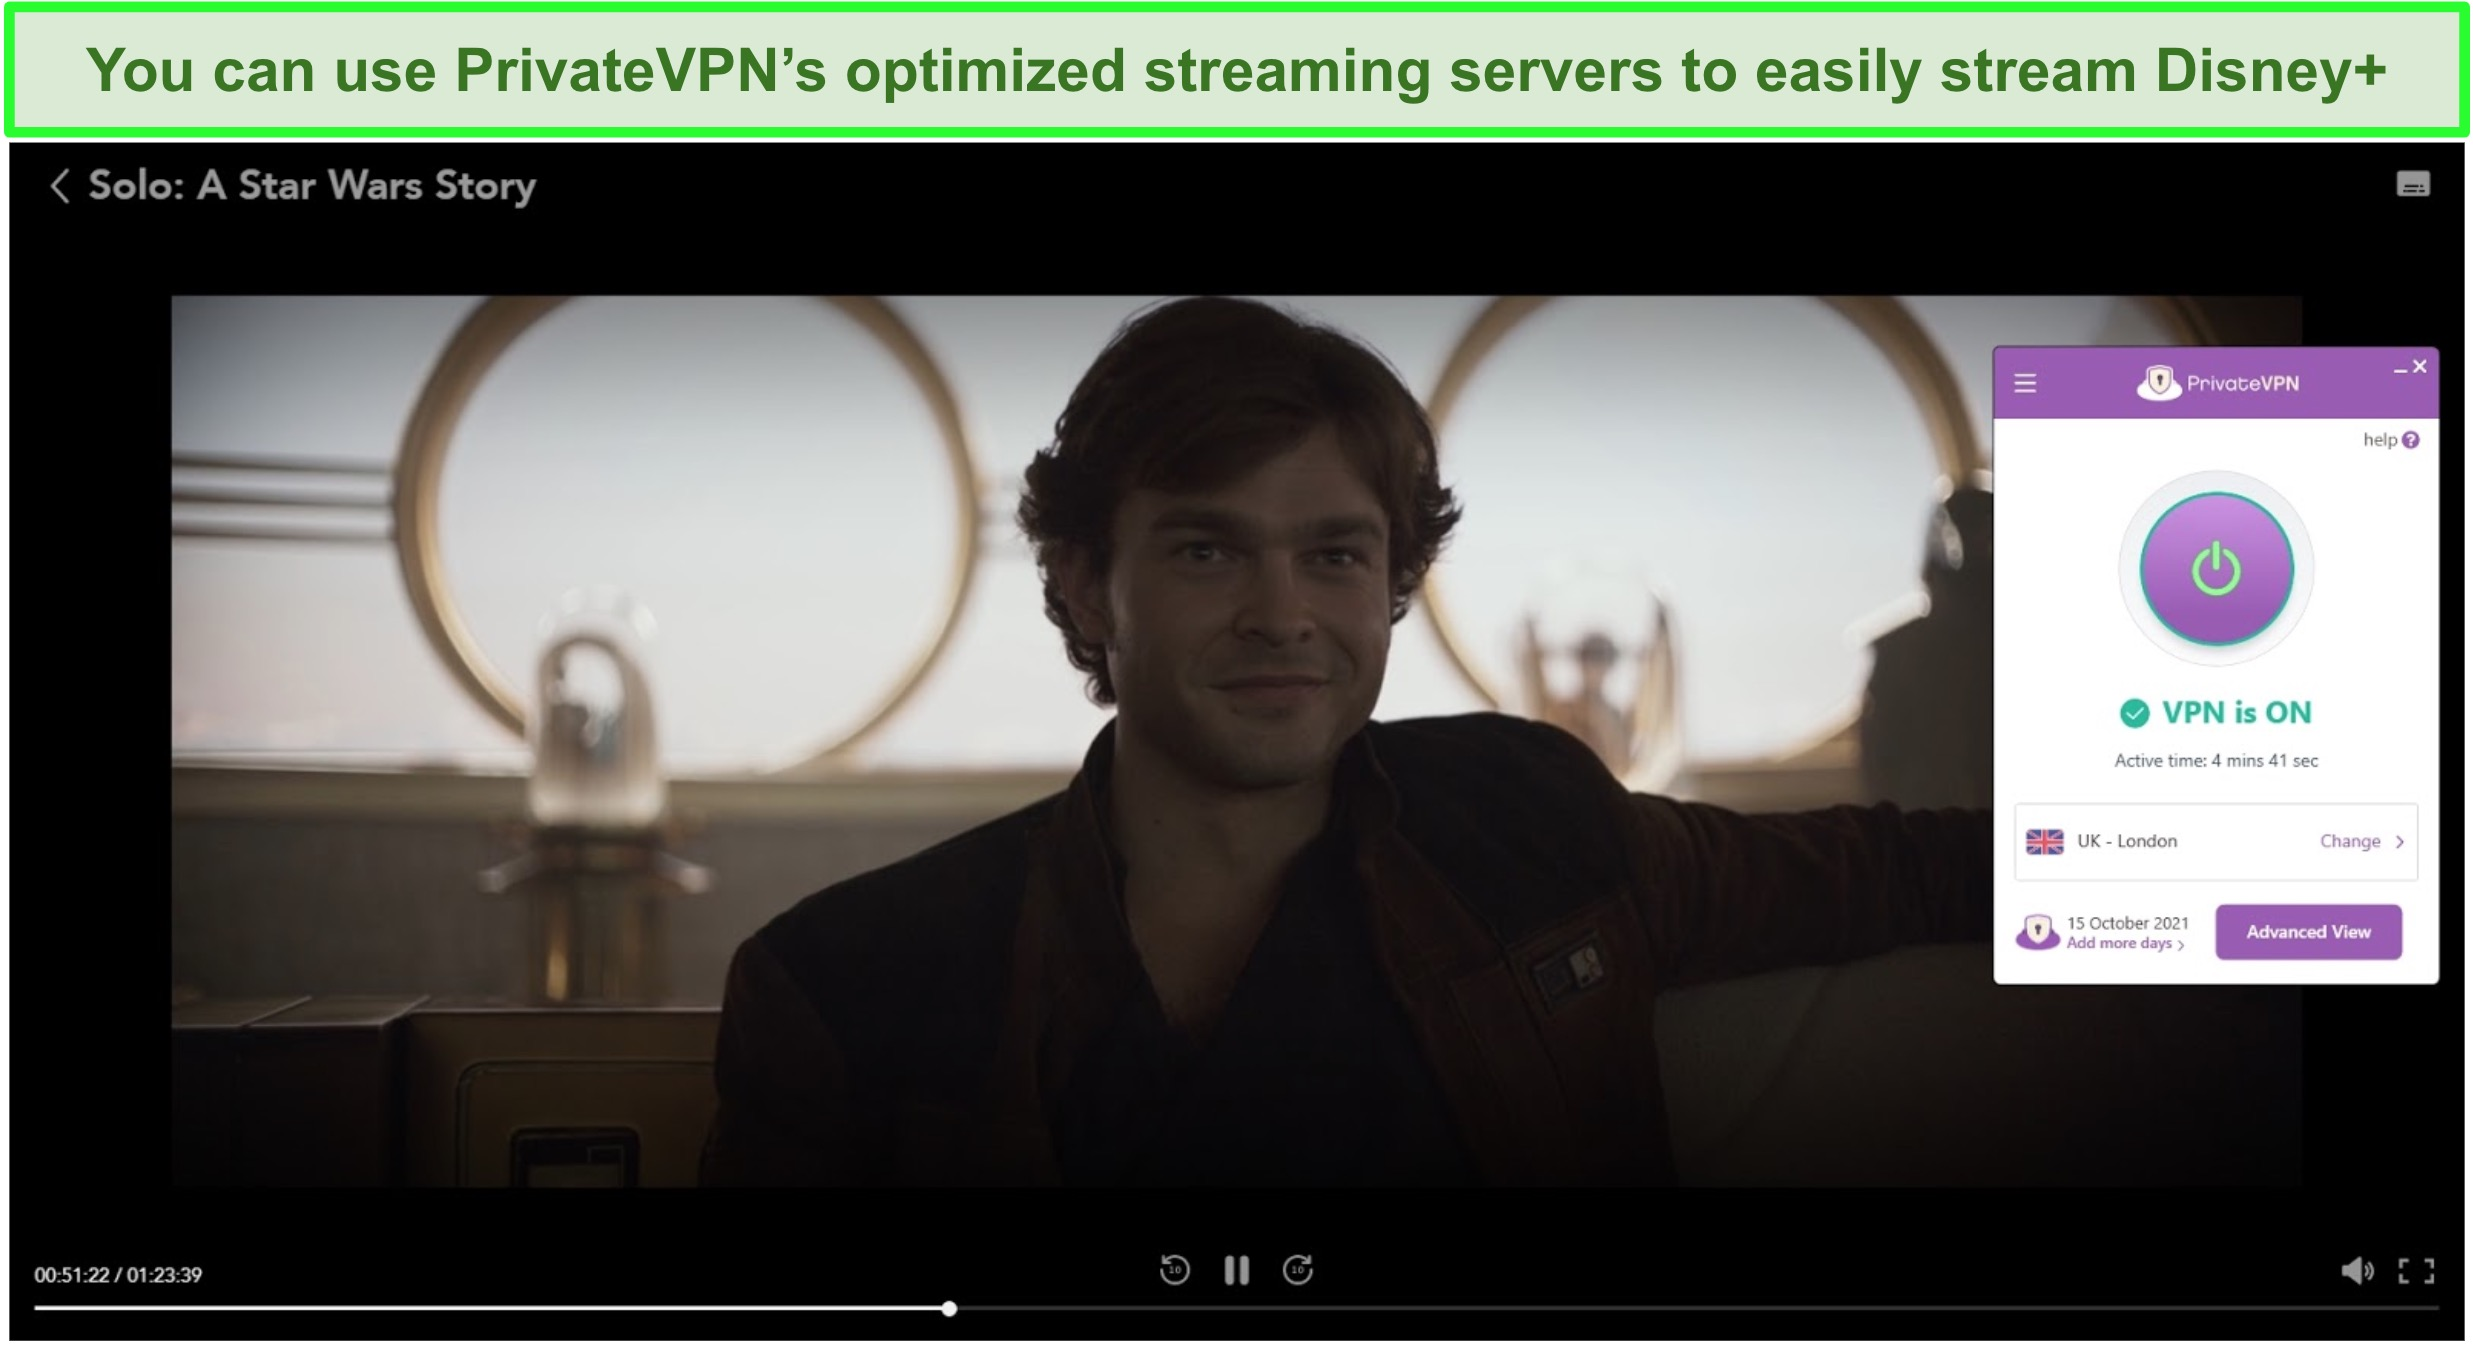 Screenshot of PrivateVPN streaming Solo: A Star Wars Story from Disney+ UK.